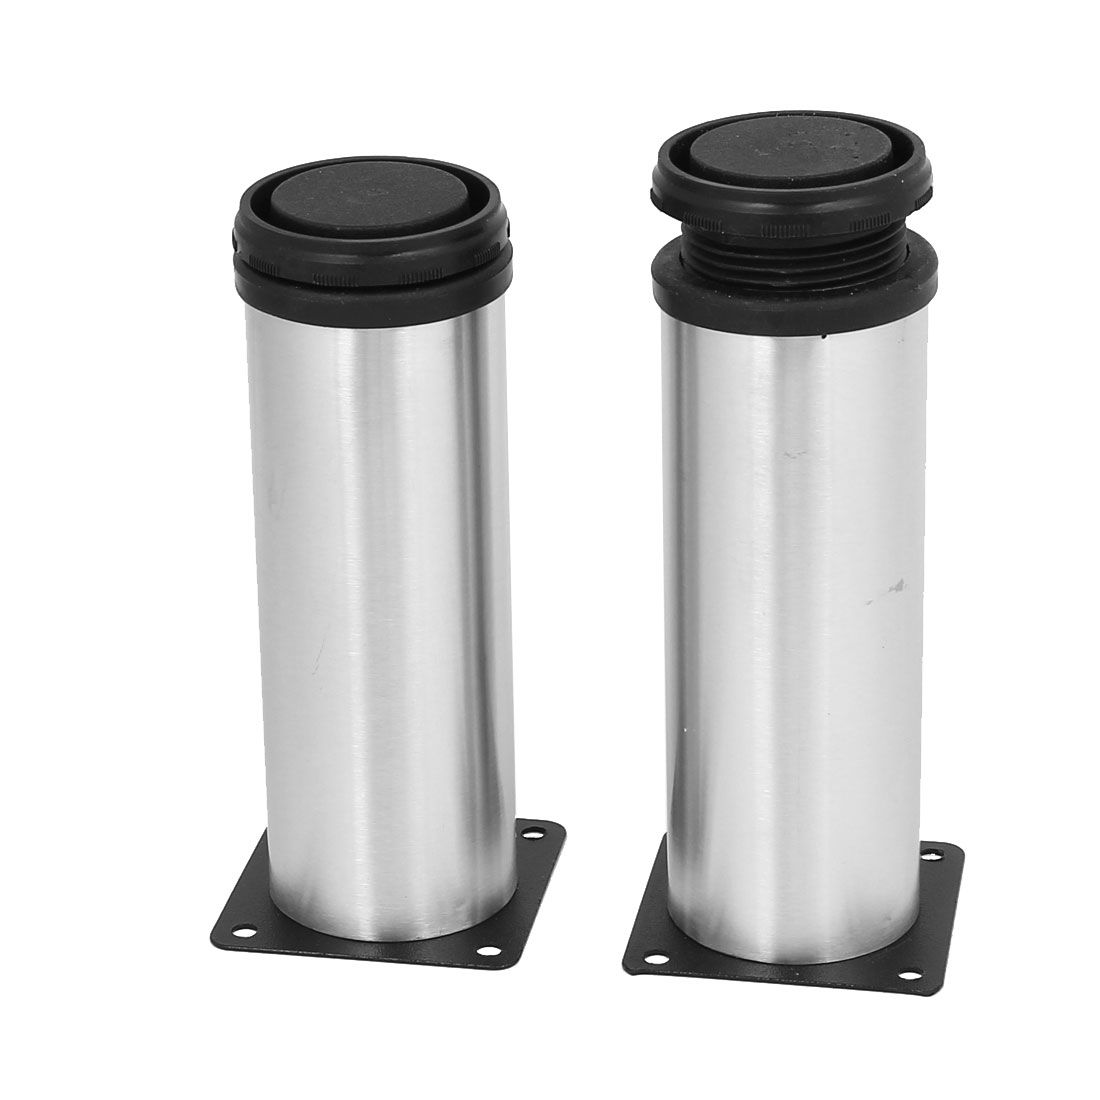 150mm Height Stainless Steel Square Shape Base Adjustable Cabinet Leg Feet 2pcs